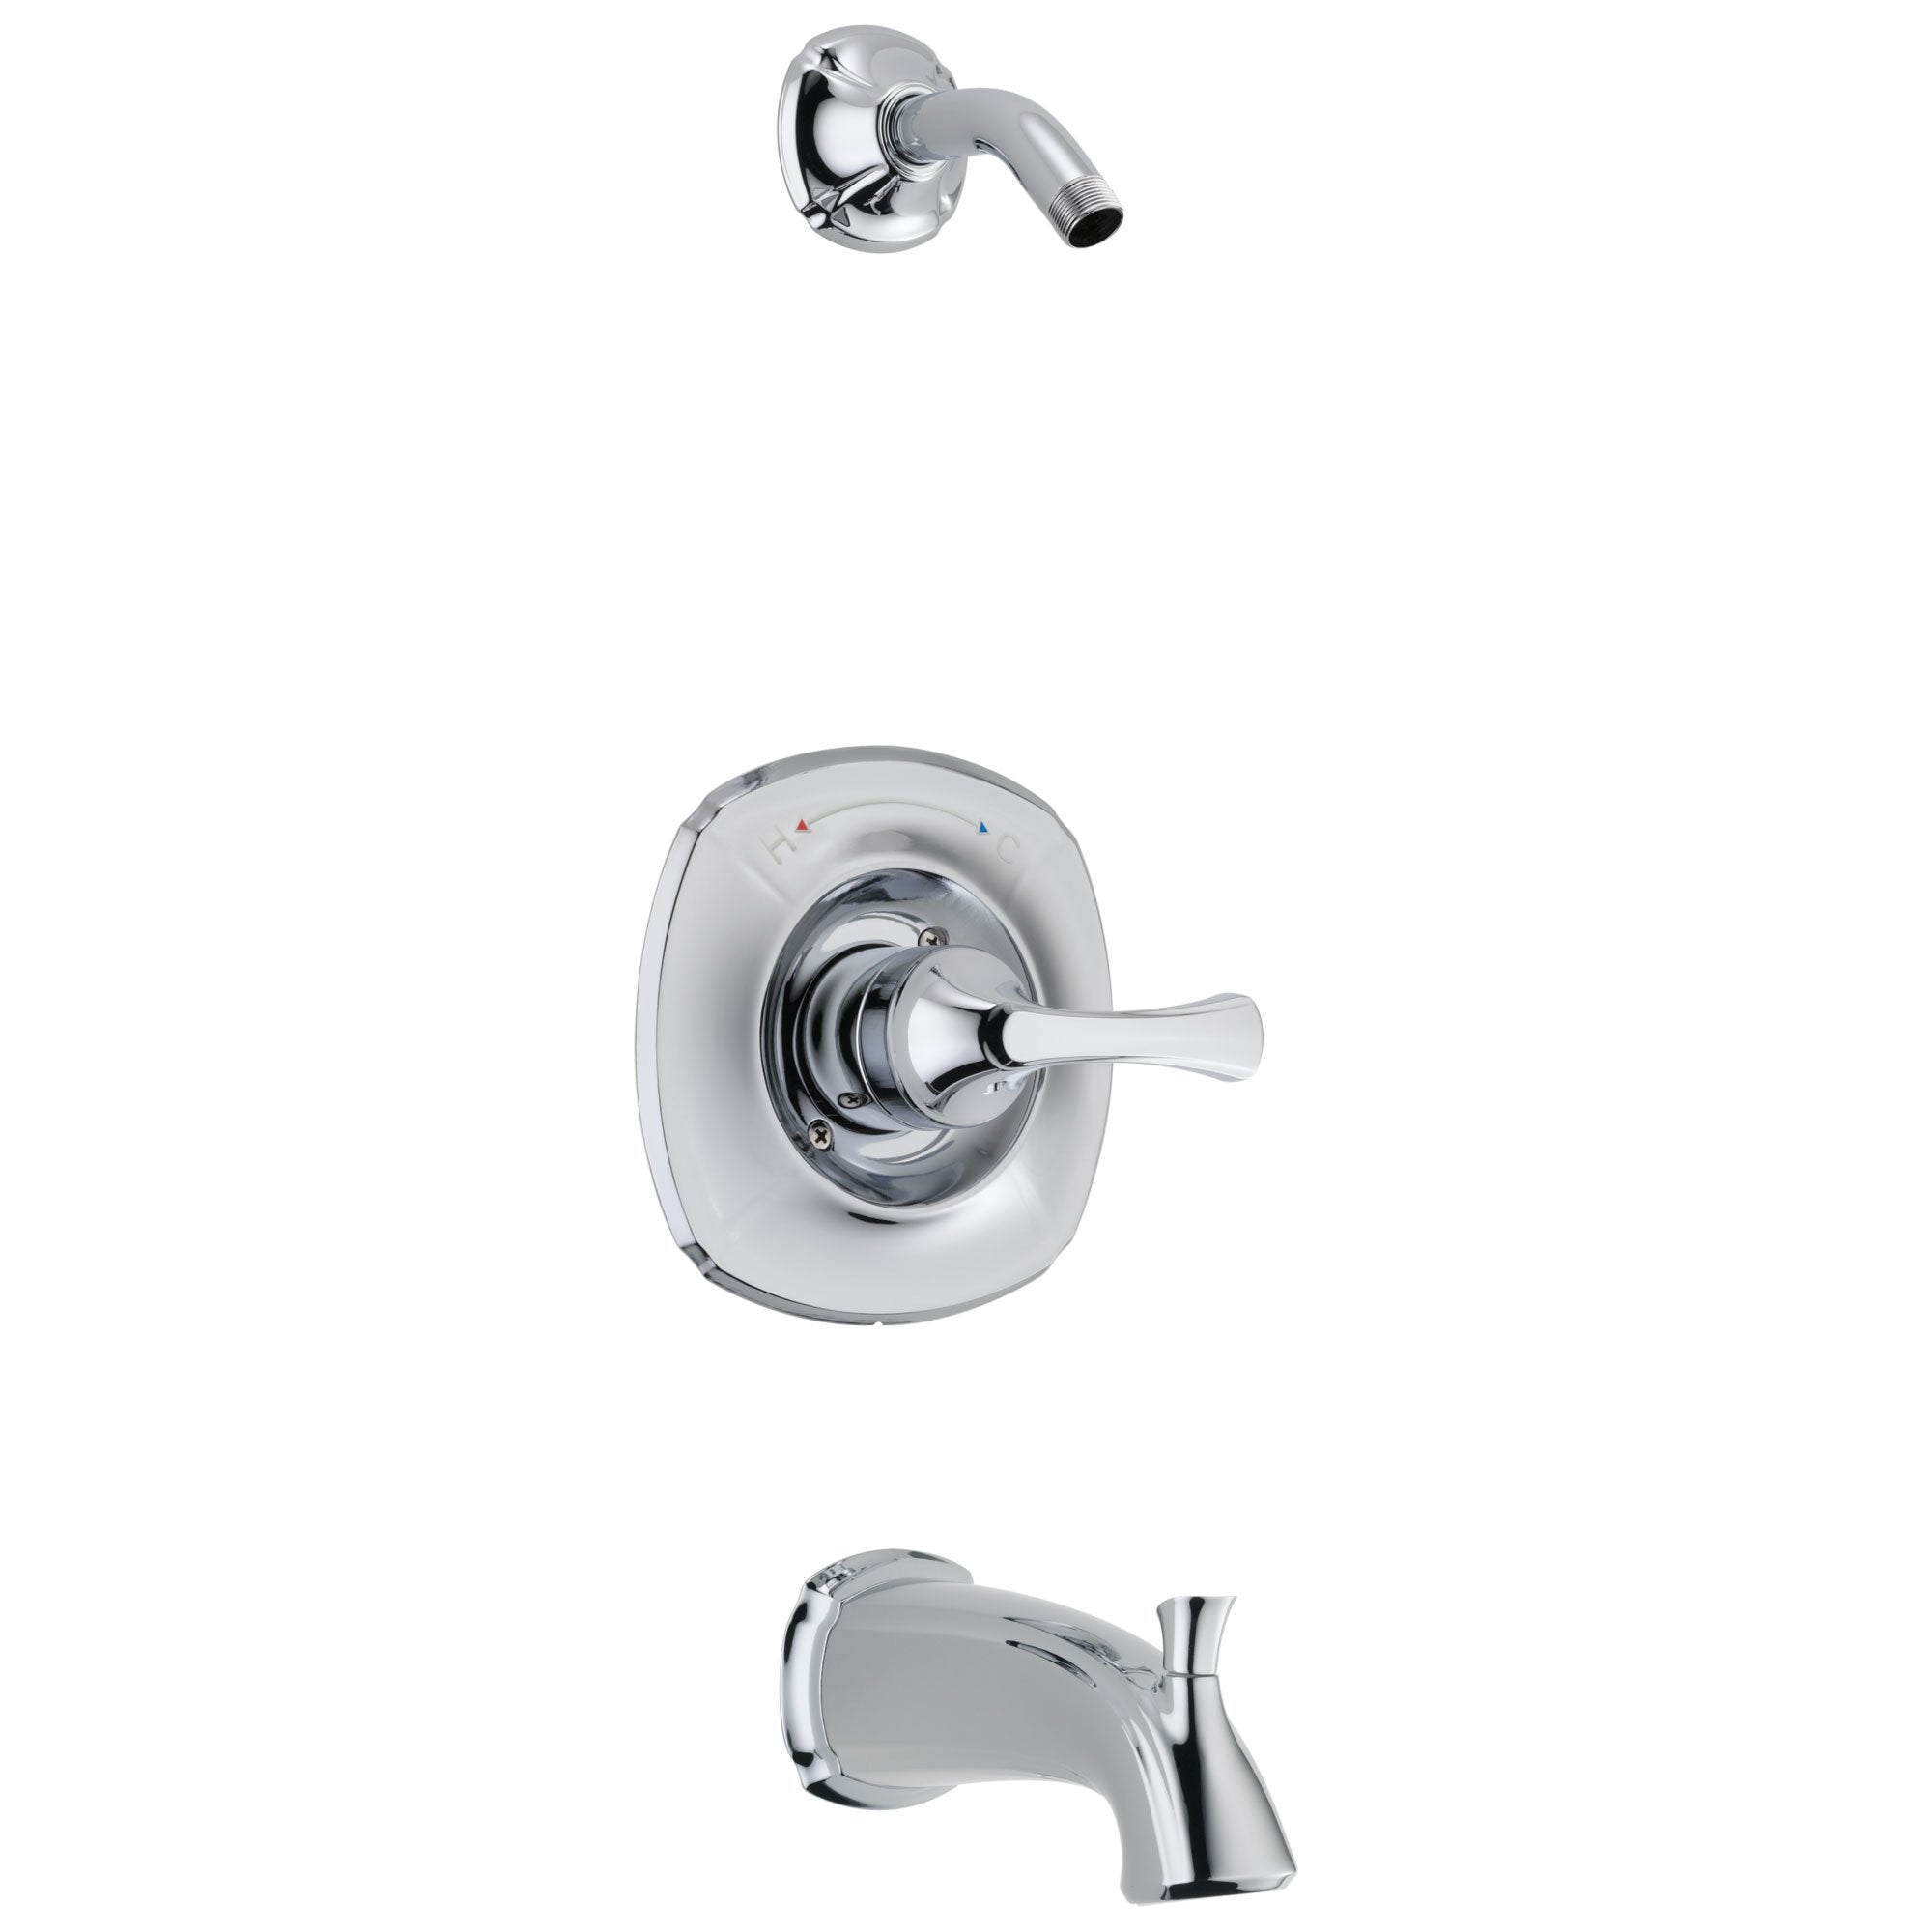 Delta Addison Collection Chrome Finish Monitor 14 Series Bath Tub and Shower Faucet - Less Showerhead Includes Trim Kit Rough Valve with Stops D2376V